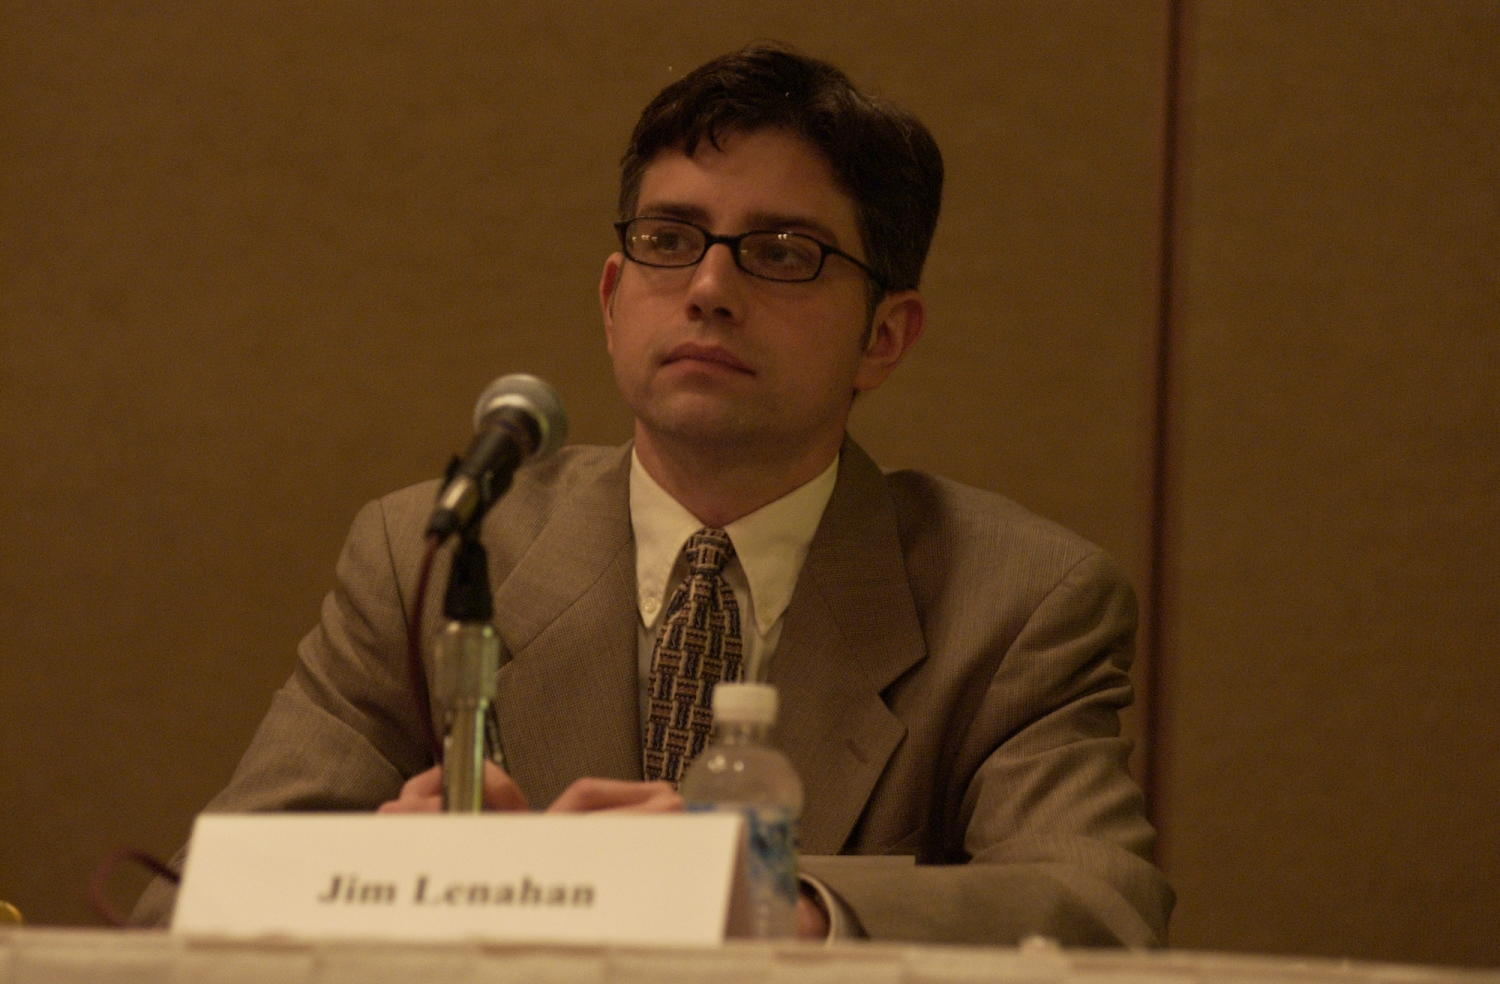 [Jim Lenahan attending TDNA conference], Photograph of Jim Lenahan, a guest speaker attending the 2004 Texas Daily News Association annual conference held in Corpus Christi. Lenahan is seen seated behind a table and in front of a microphone as he is on a panel of other guest speakers at the conference.,